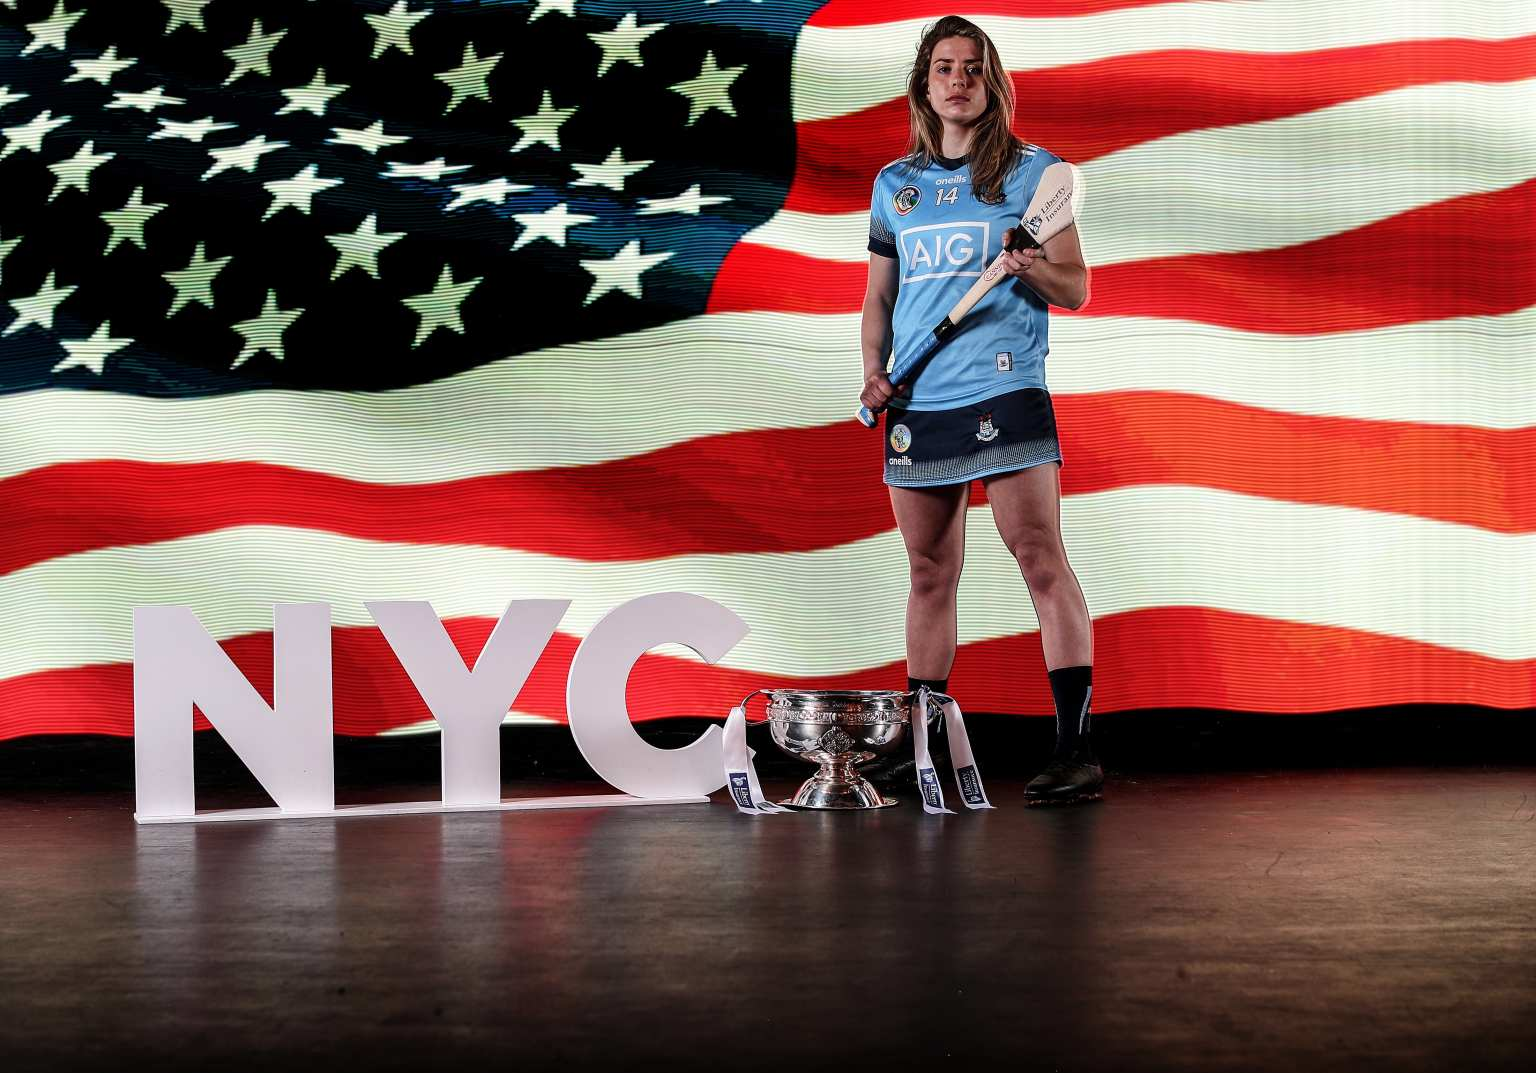 Dublin Senior Camogie Player Aisling Maher pictured at the Camogie All Ireland Championships launch with an American flag behind her and the O'Duffy Cup on the floor beside her with the a NYC prop on the floor because New York was announced as the destination for this year's All-Stars tour.